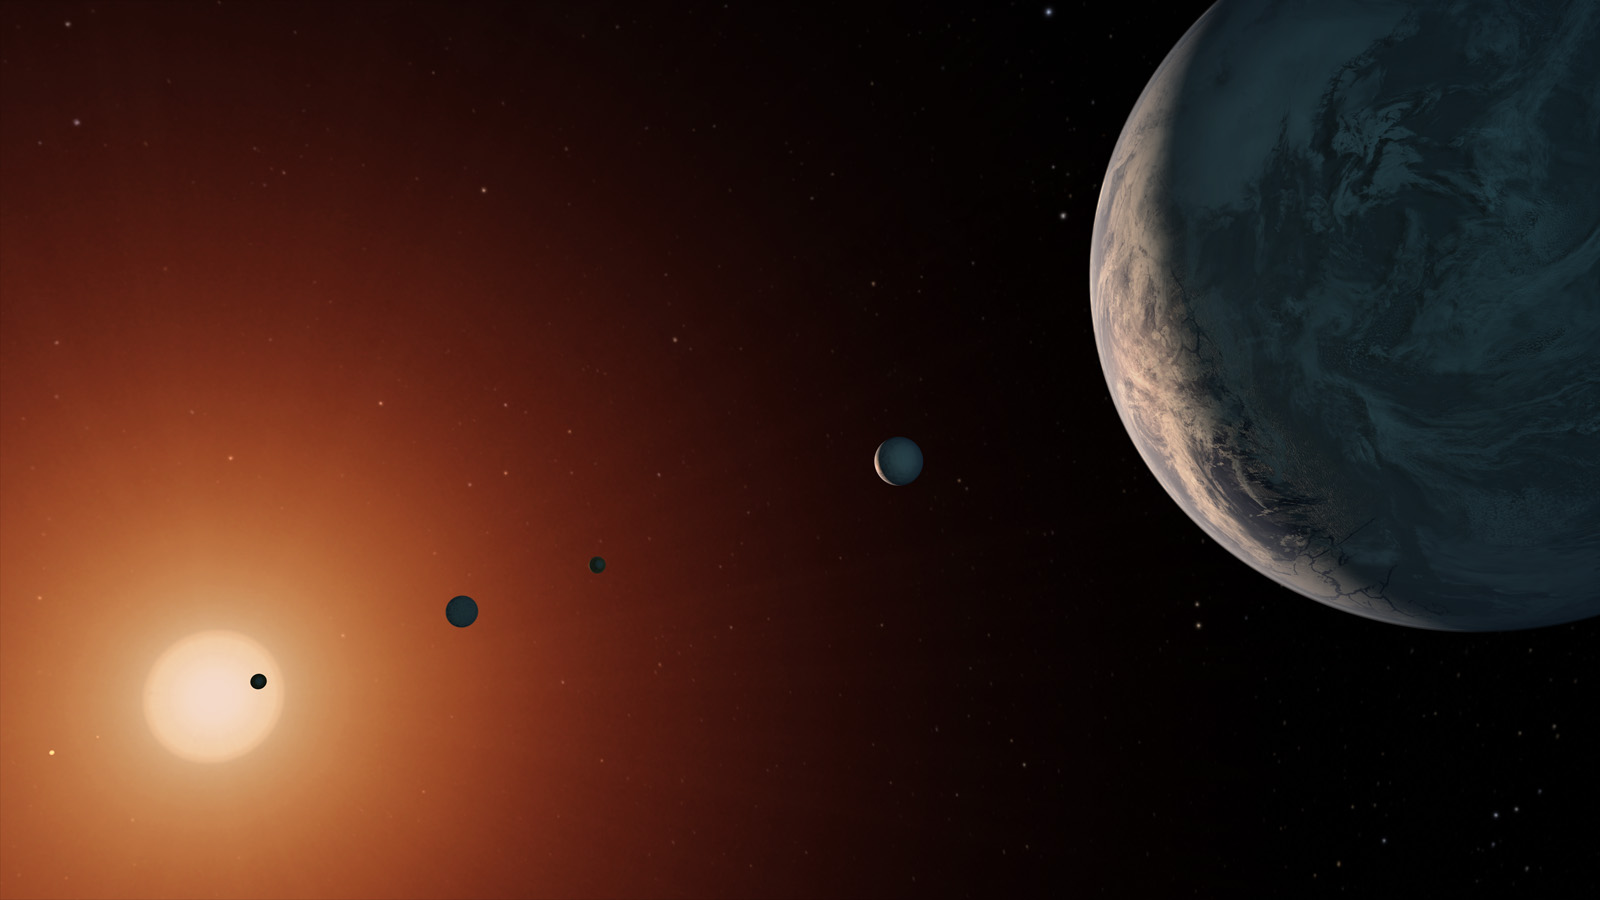 An Update on the Potential Habitability of TRAPPIST-1.  No Aliens yet, but We've Learned a lot.